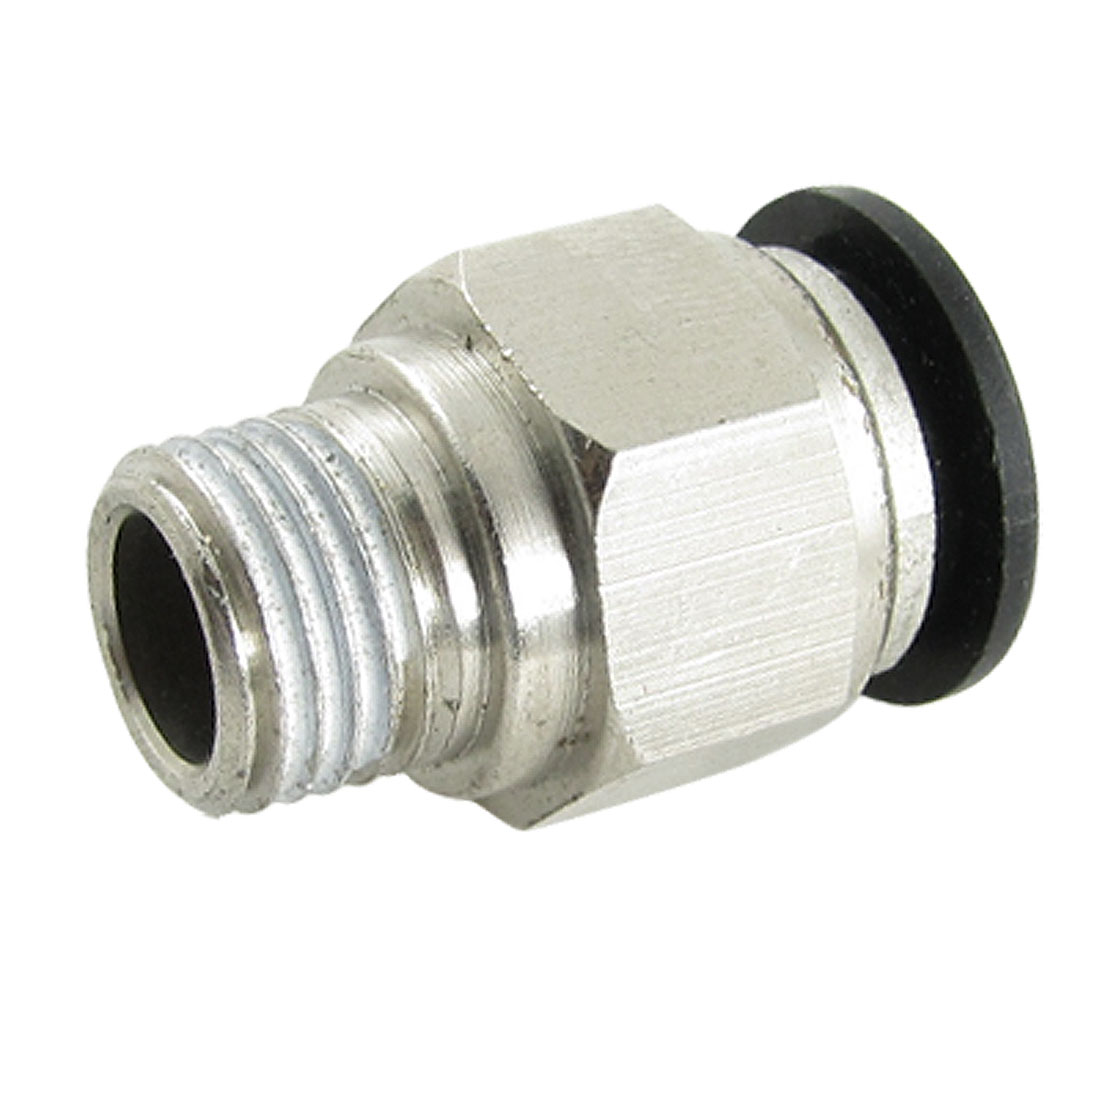 Air Pneumatic Tube 12mm Push in Connector Quick Fittings